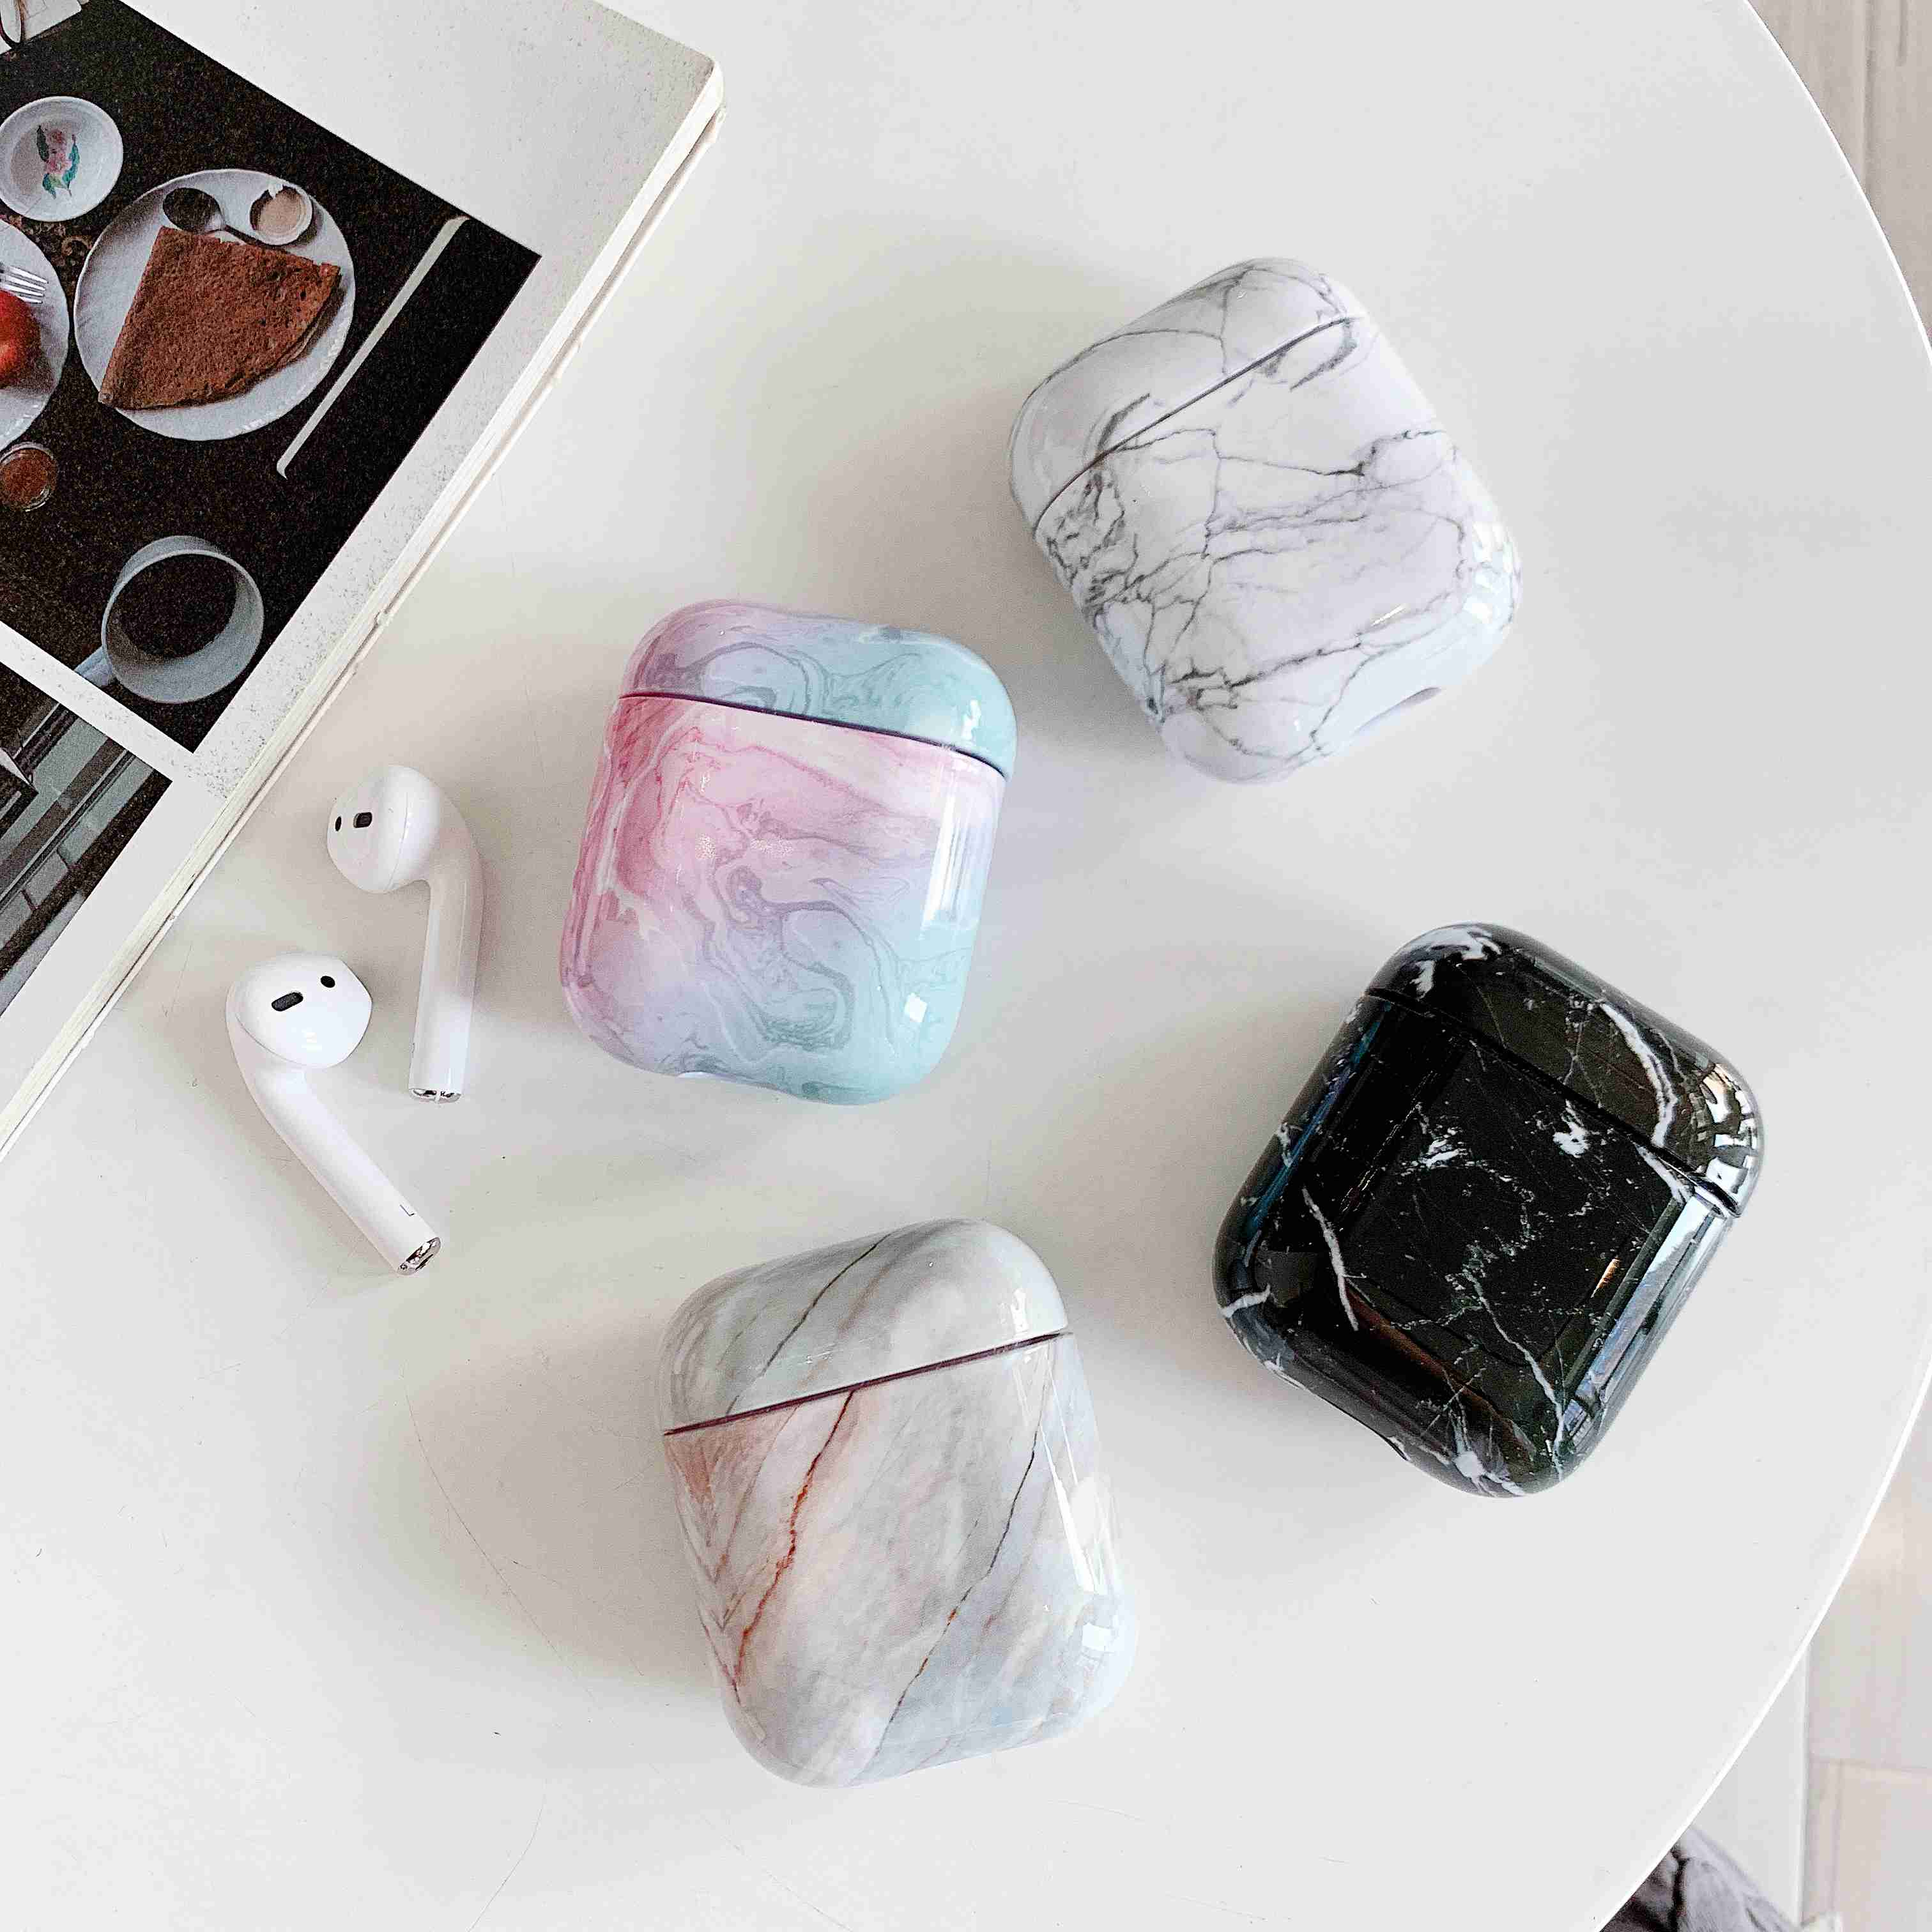 Case For Original Apple Airpods Case Marble Cute Cover For Apple Airpods 2 1 Case Accessories Headphone Air Pods Case Box Coque sticker